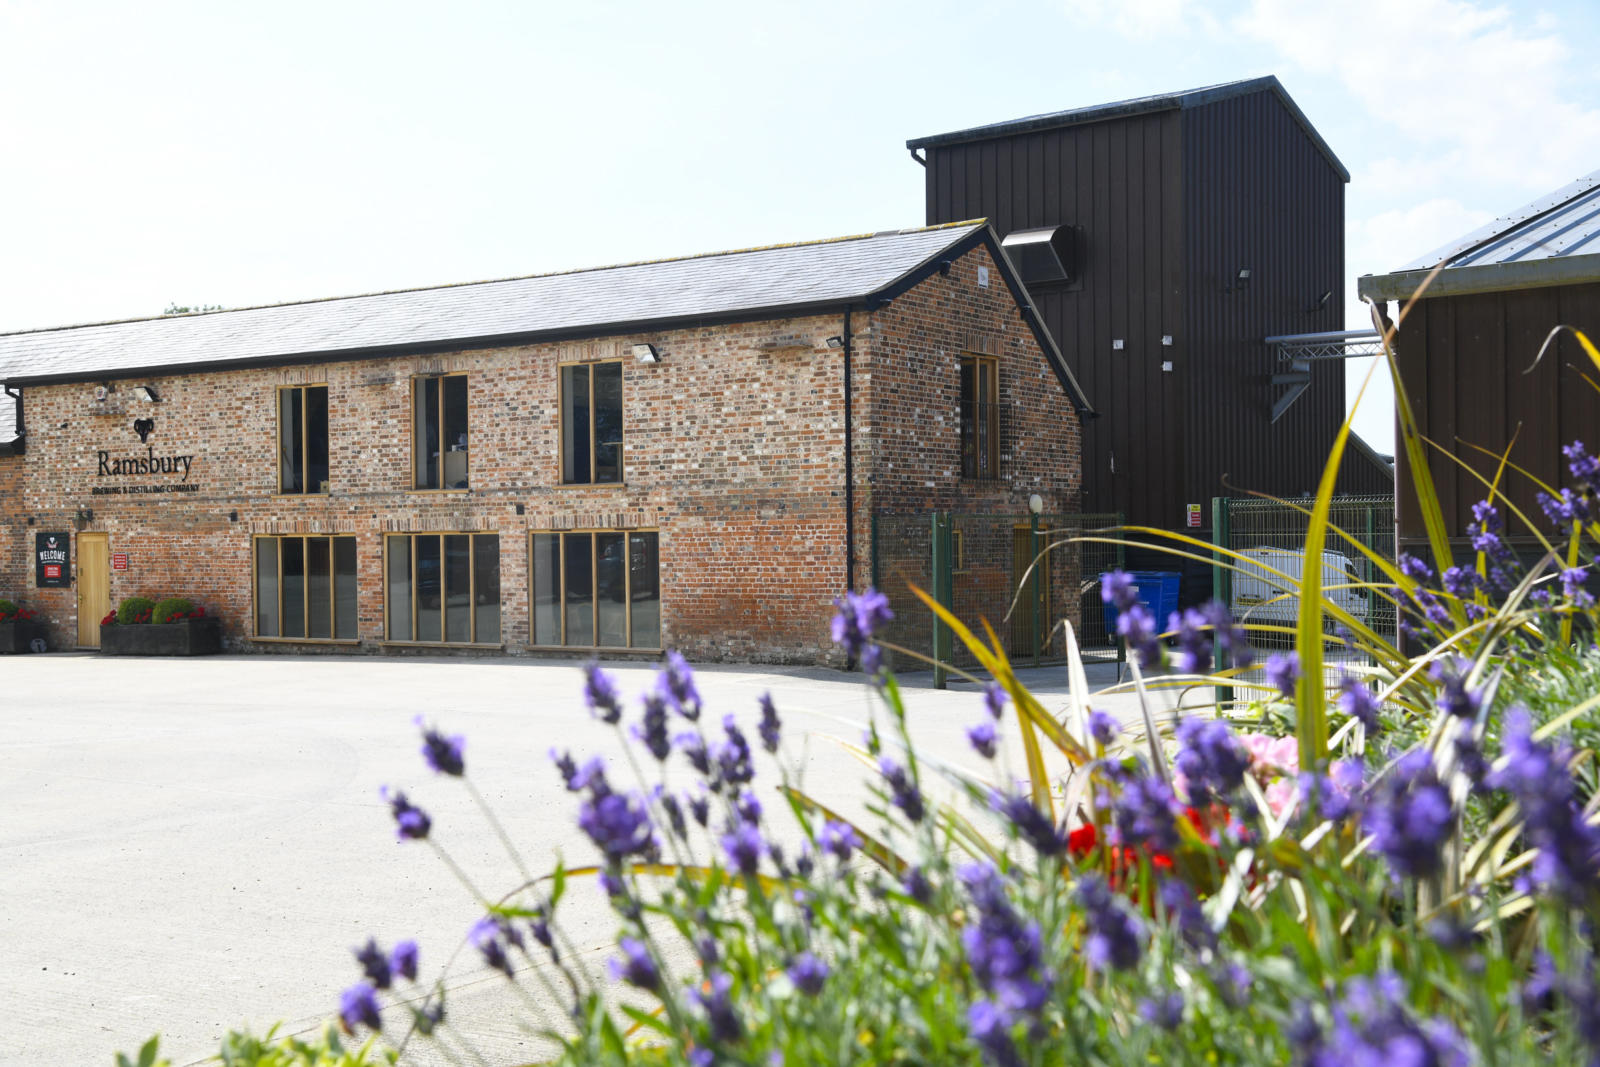 The outside of the Ramsbury Brewery shop and tasting room in Spring